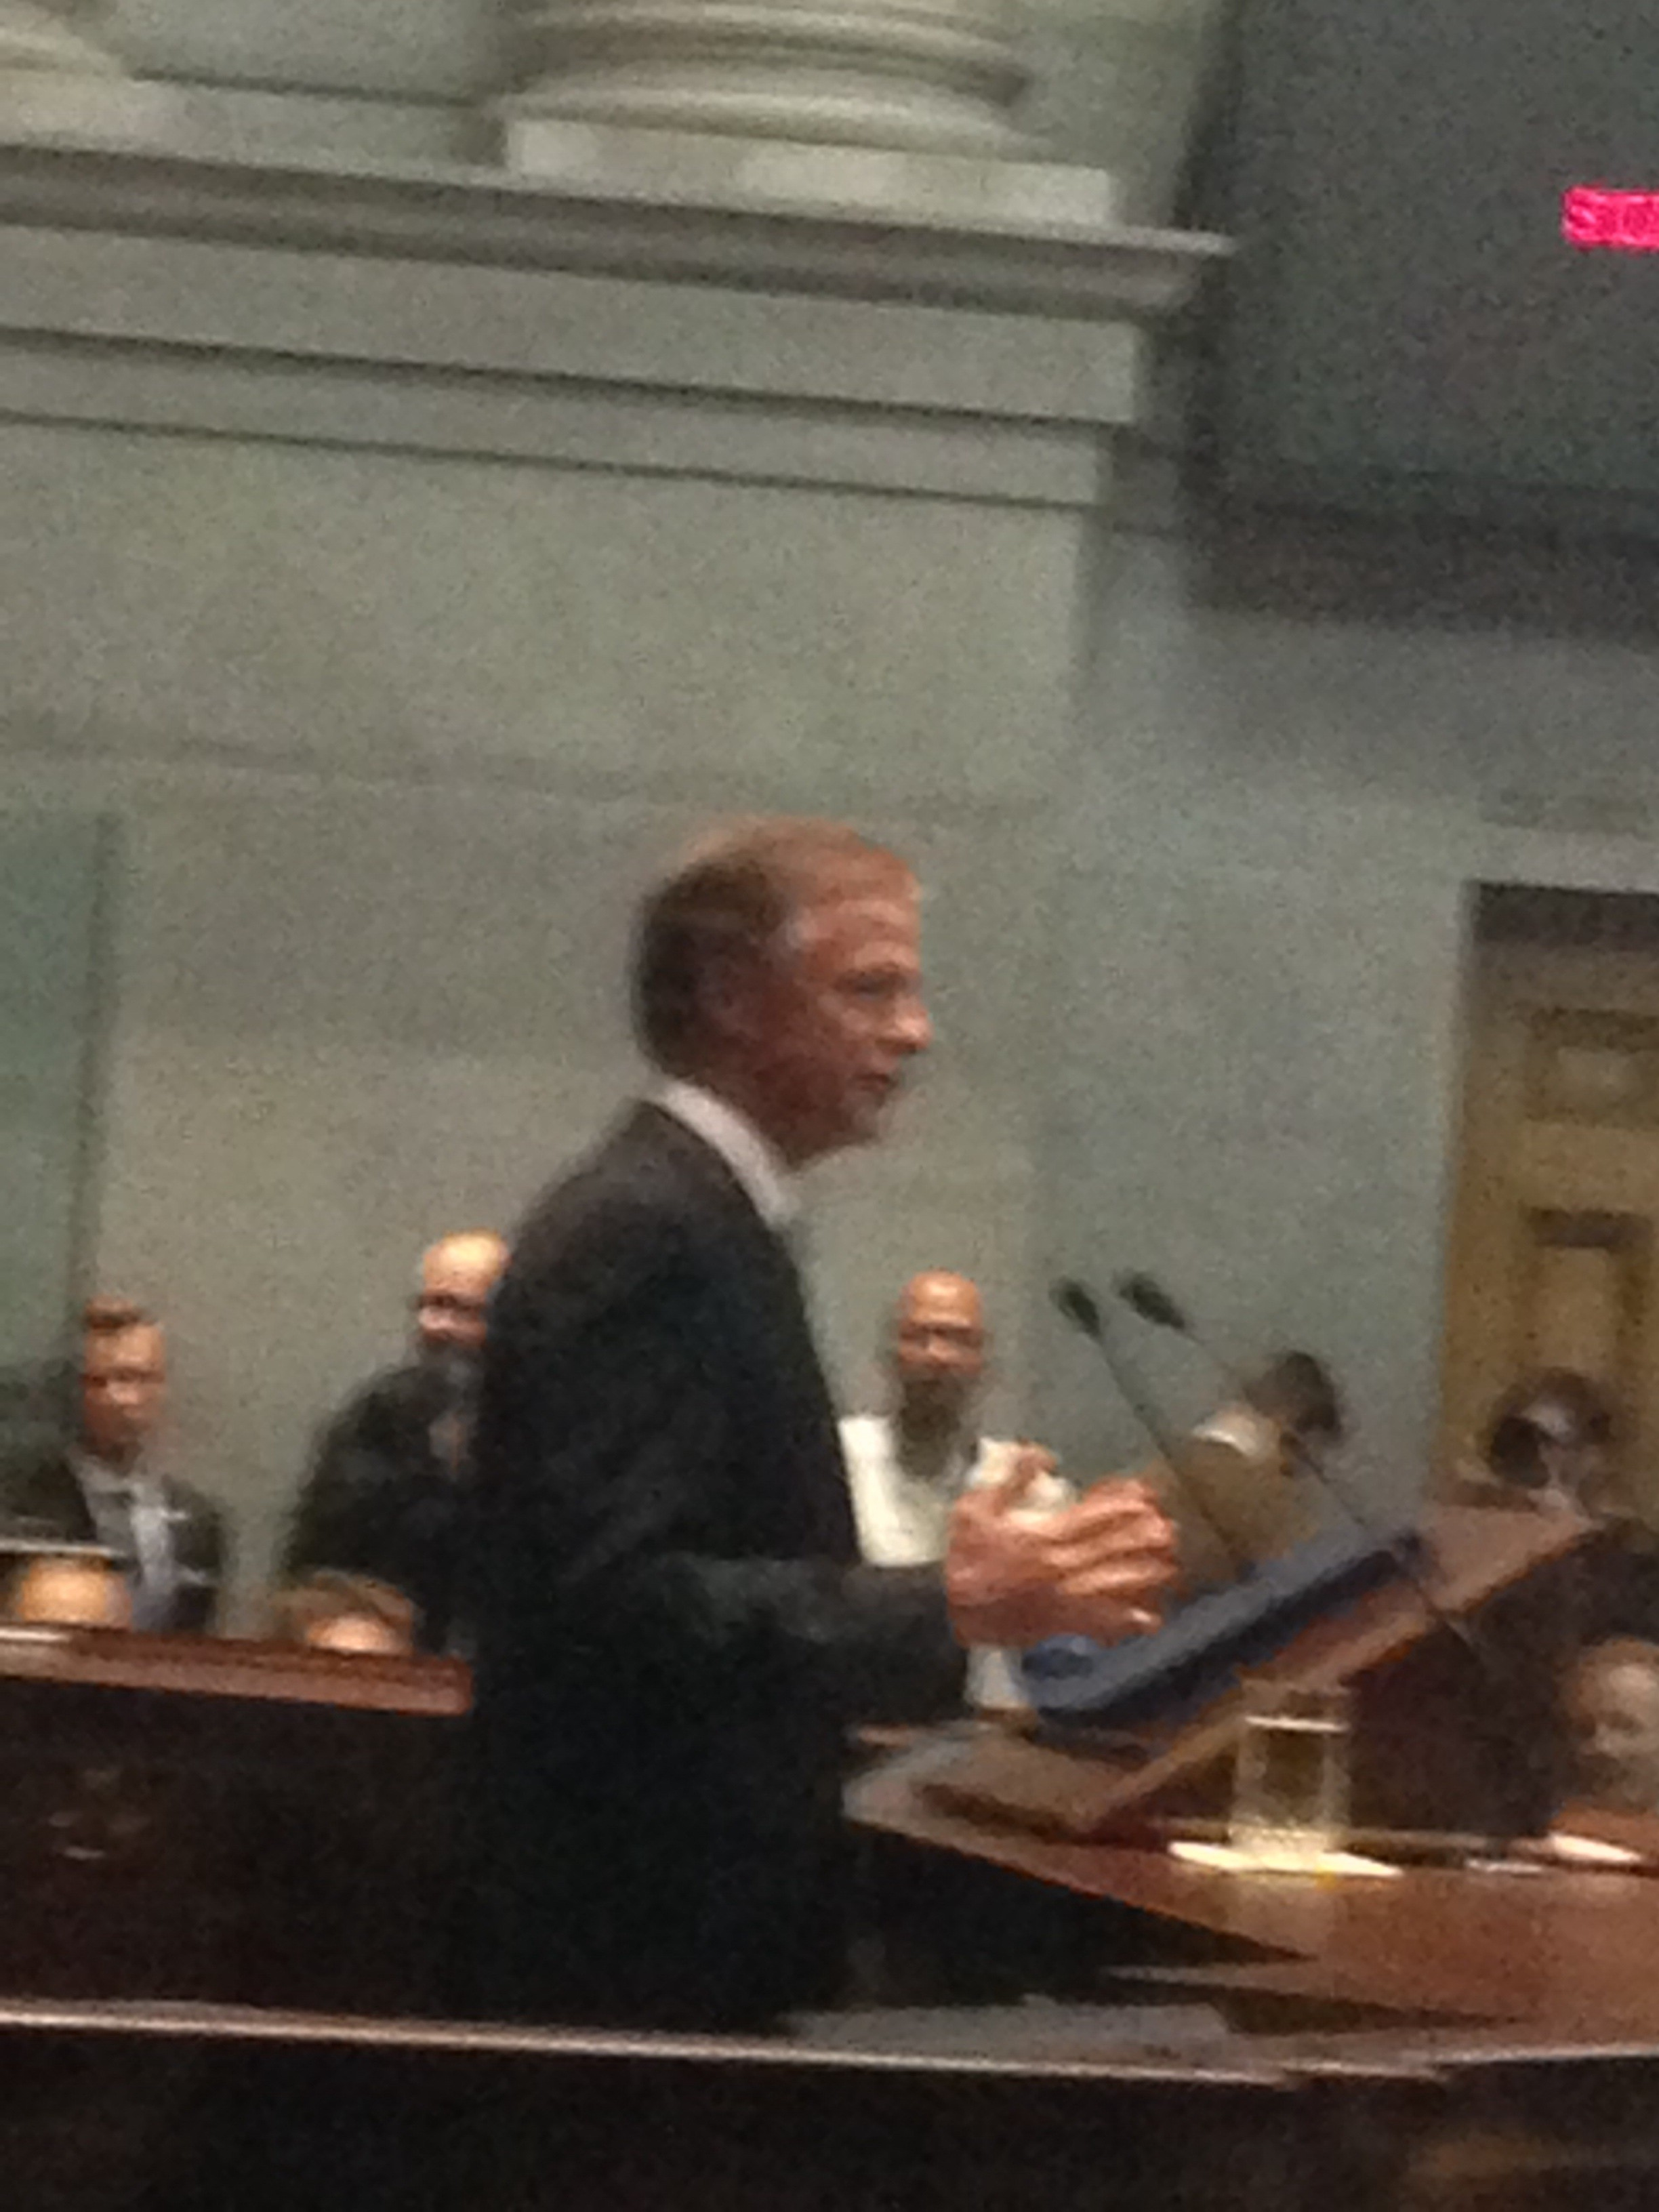 Governor Bill Haslam speaking during last nights State of the State address